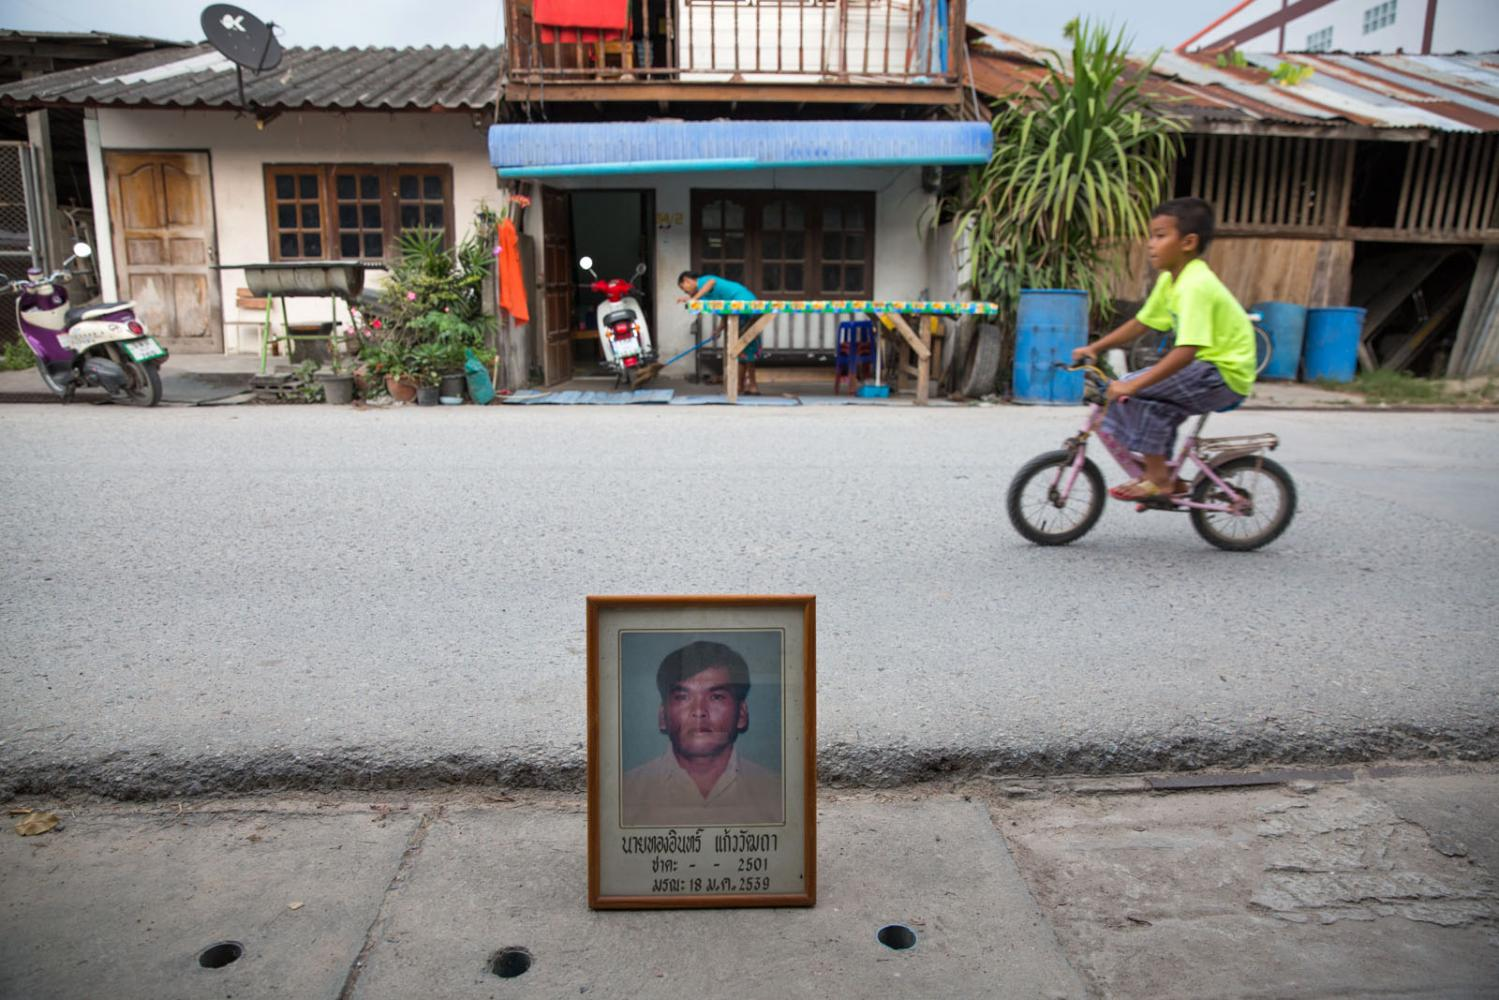 Thong-in Kaewwattha, was shot dead on 18 January 1996. He was a prominent member of the group opposing to the construction of an industrial waste disposal plant in Rayong. After he was killed the waste plant moved from that location and was built elsewhere in the province.